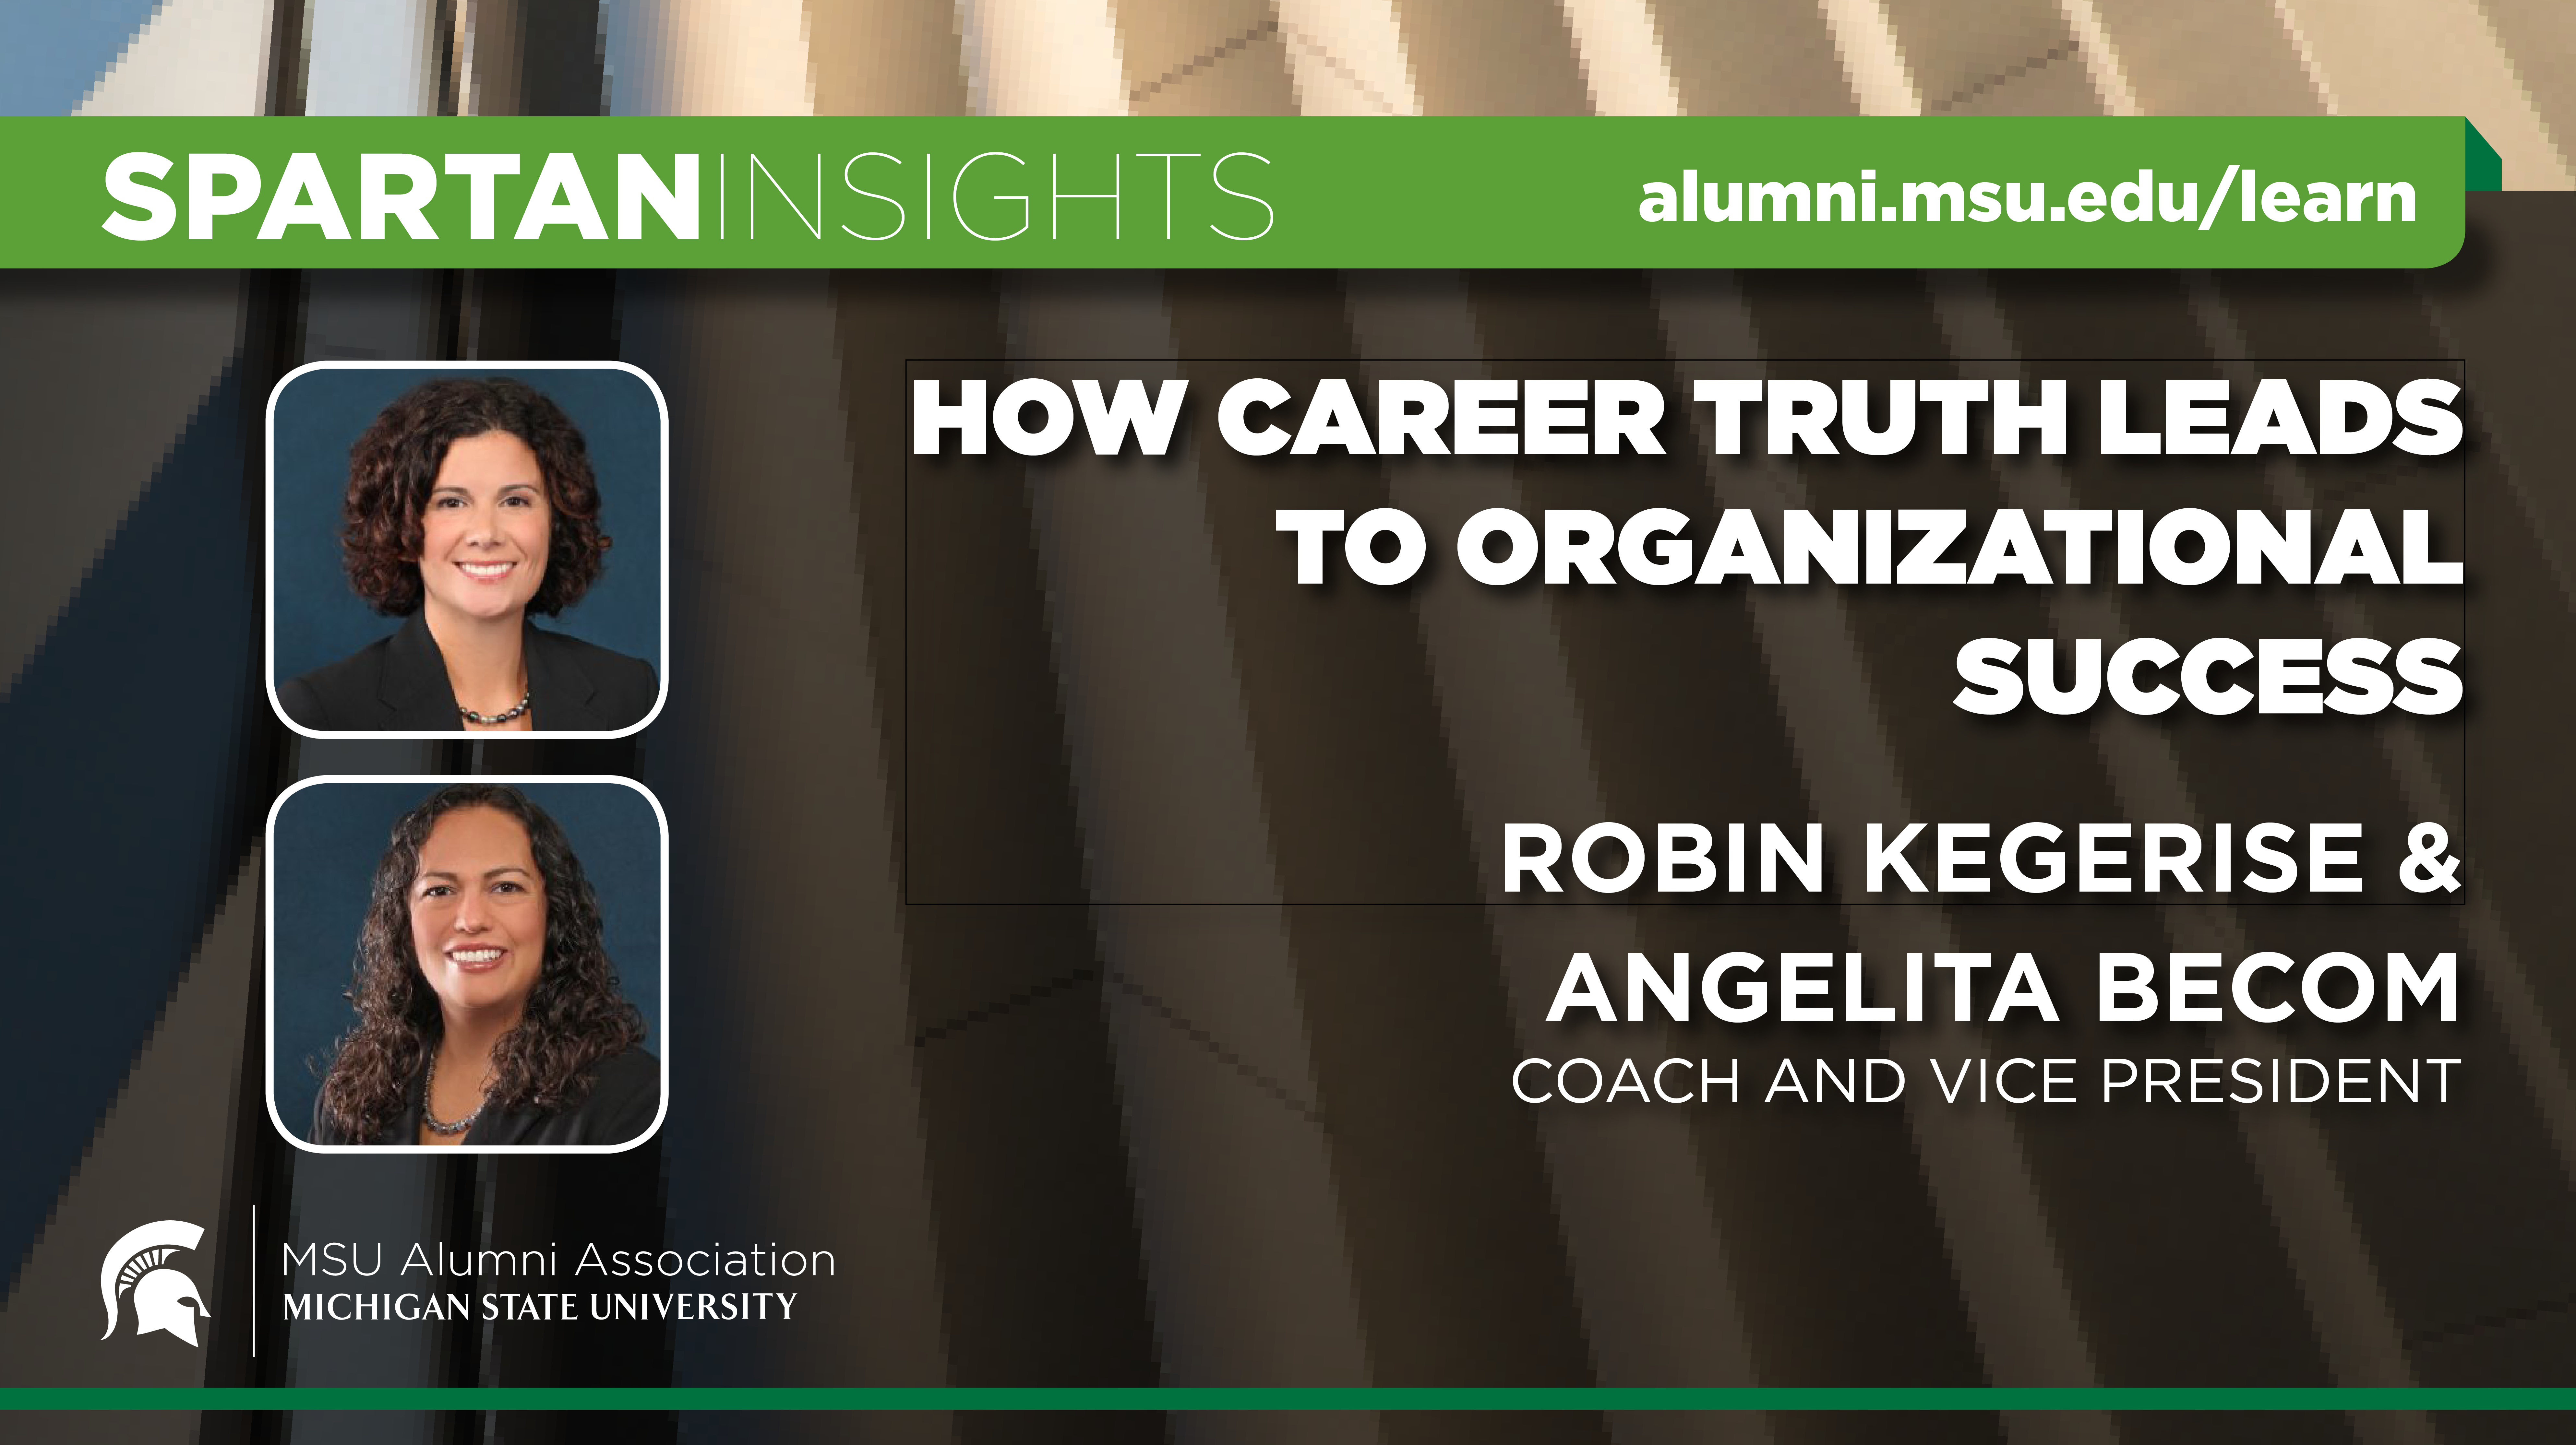 webinar cover image for Robin Kegerise & Angelita Becom | How Career Truth Leads To Organizational Success